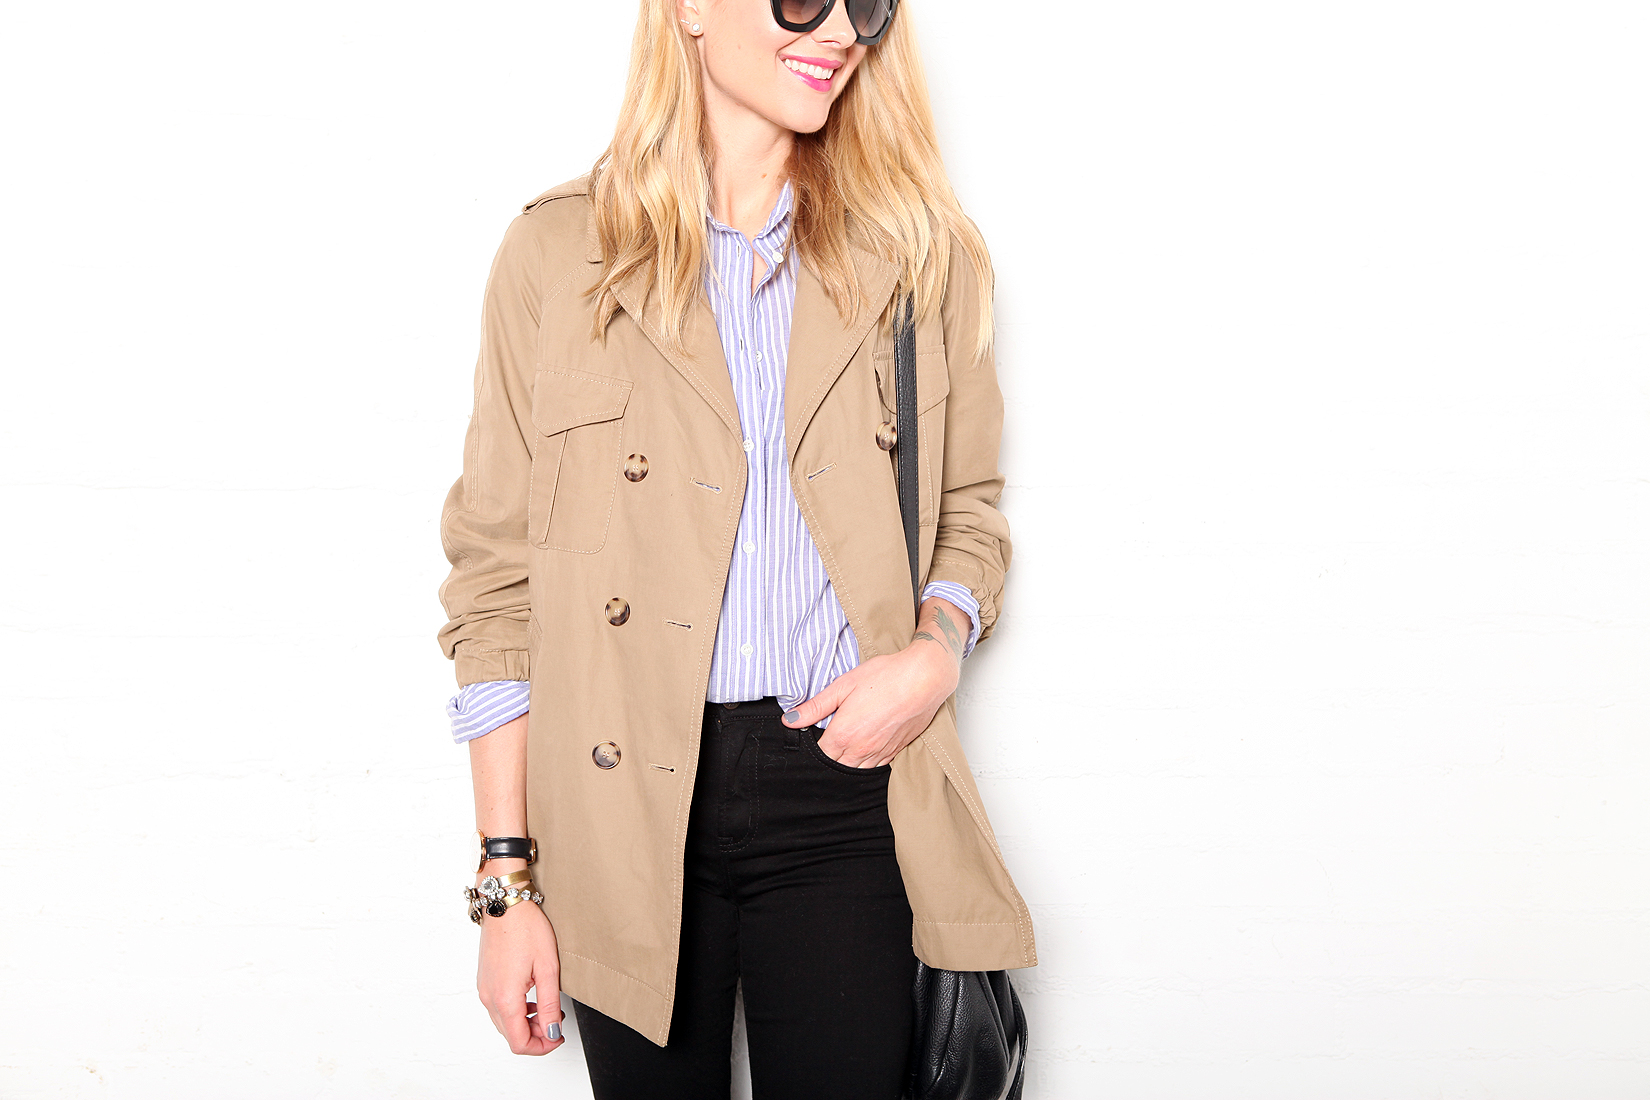 fashion-jackson-loft-cargo-swing-trench-jcrew-blue-white-stripe-shirt-black-skinny-jeans